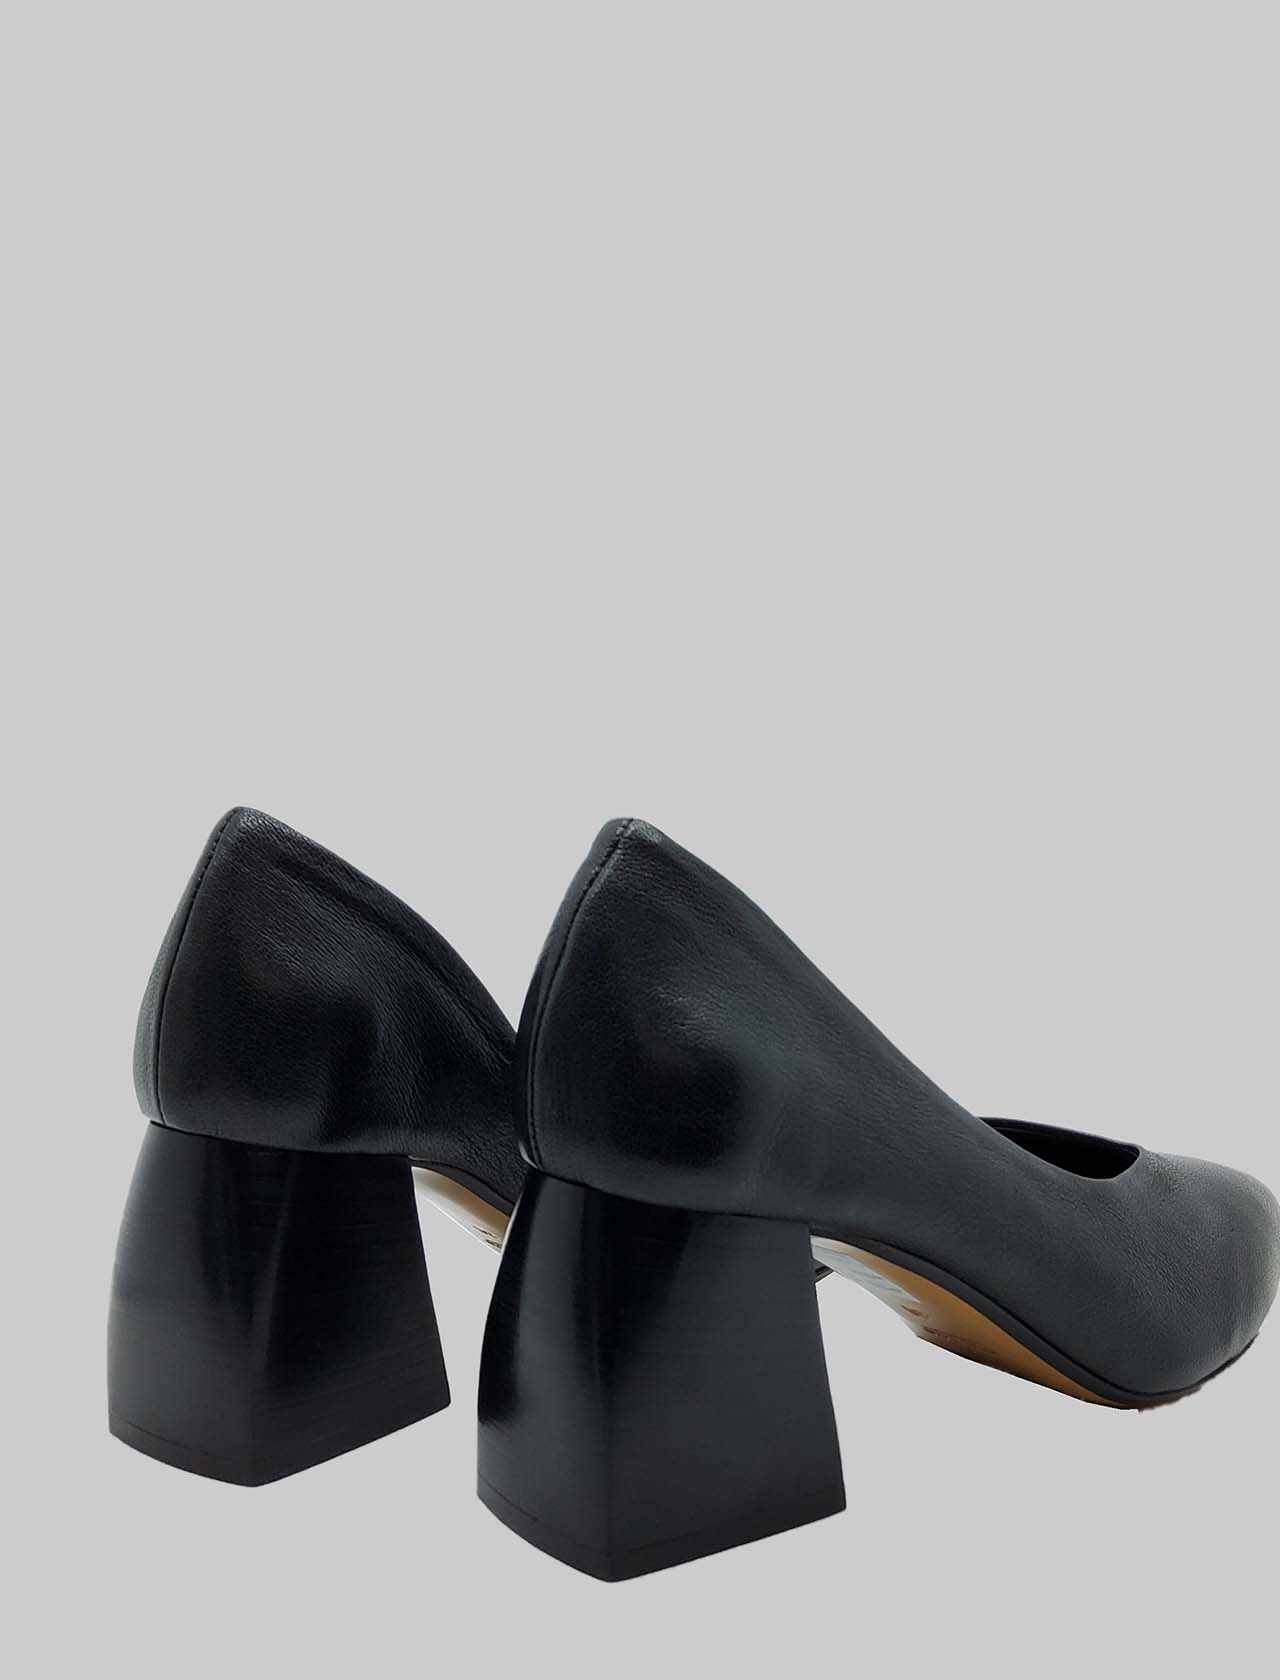 Women's Shoes Black Leather Décolleté with Leather Heel and Pointed Toe Spatarella   Pumps   SP30001